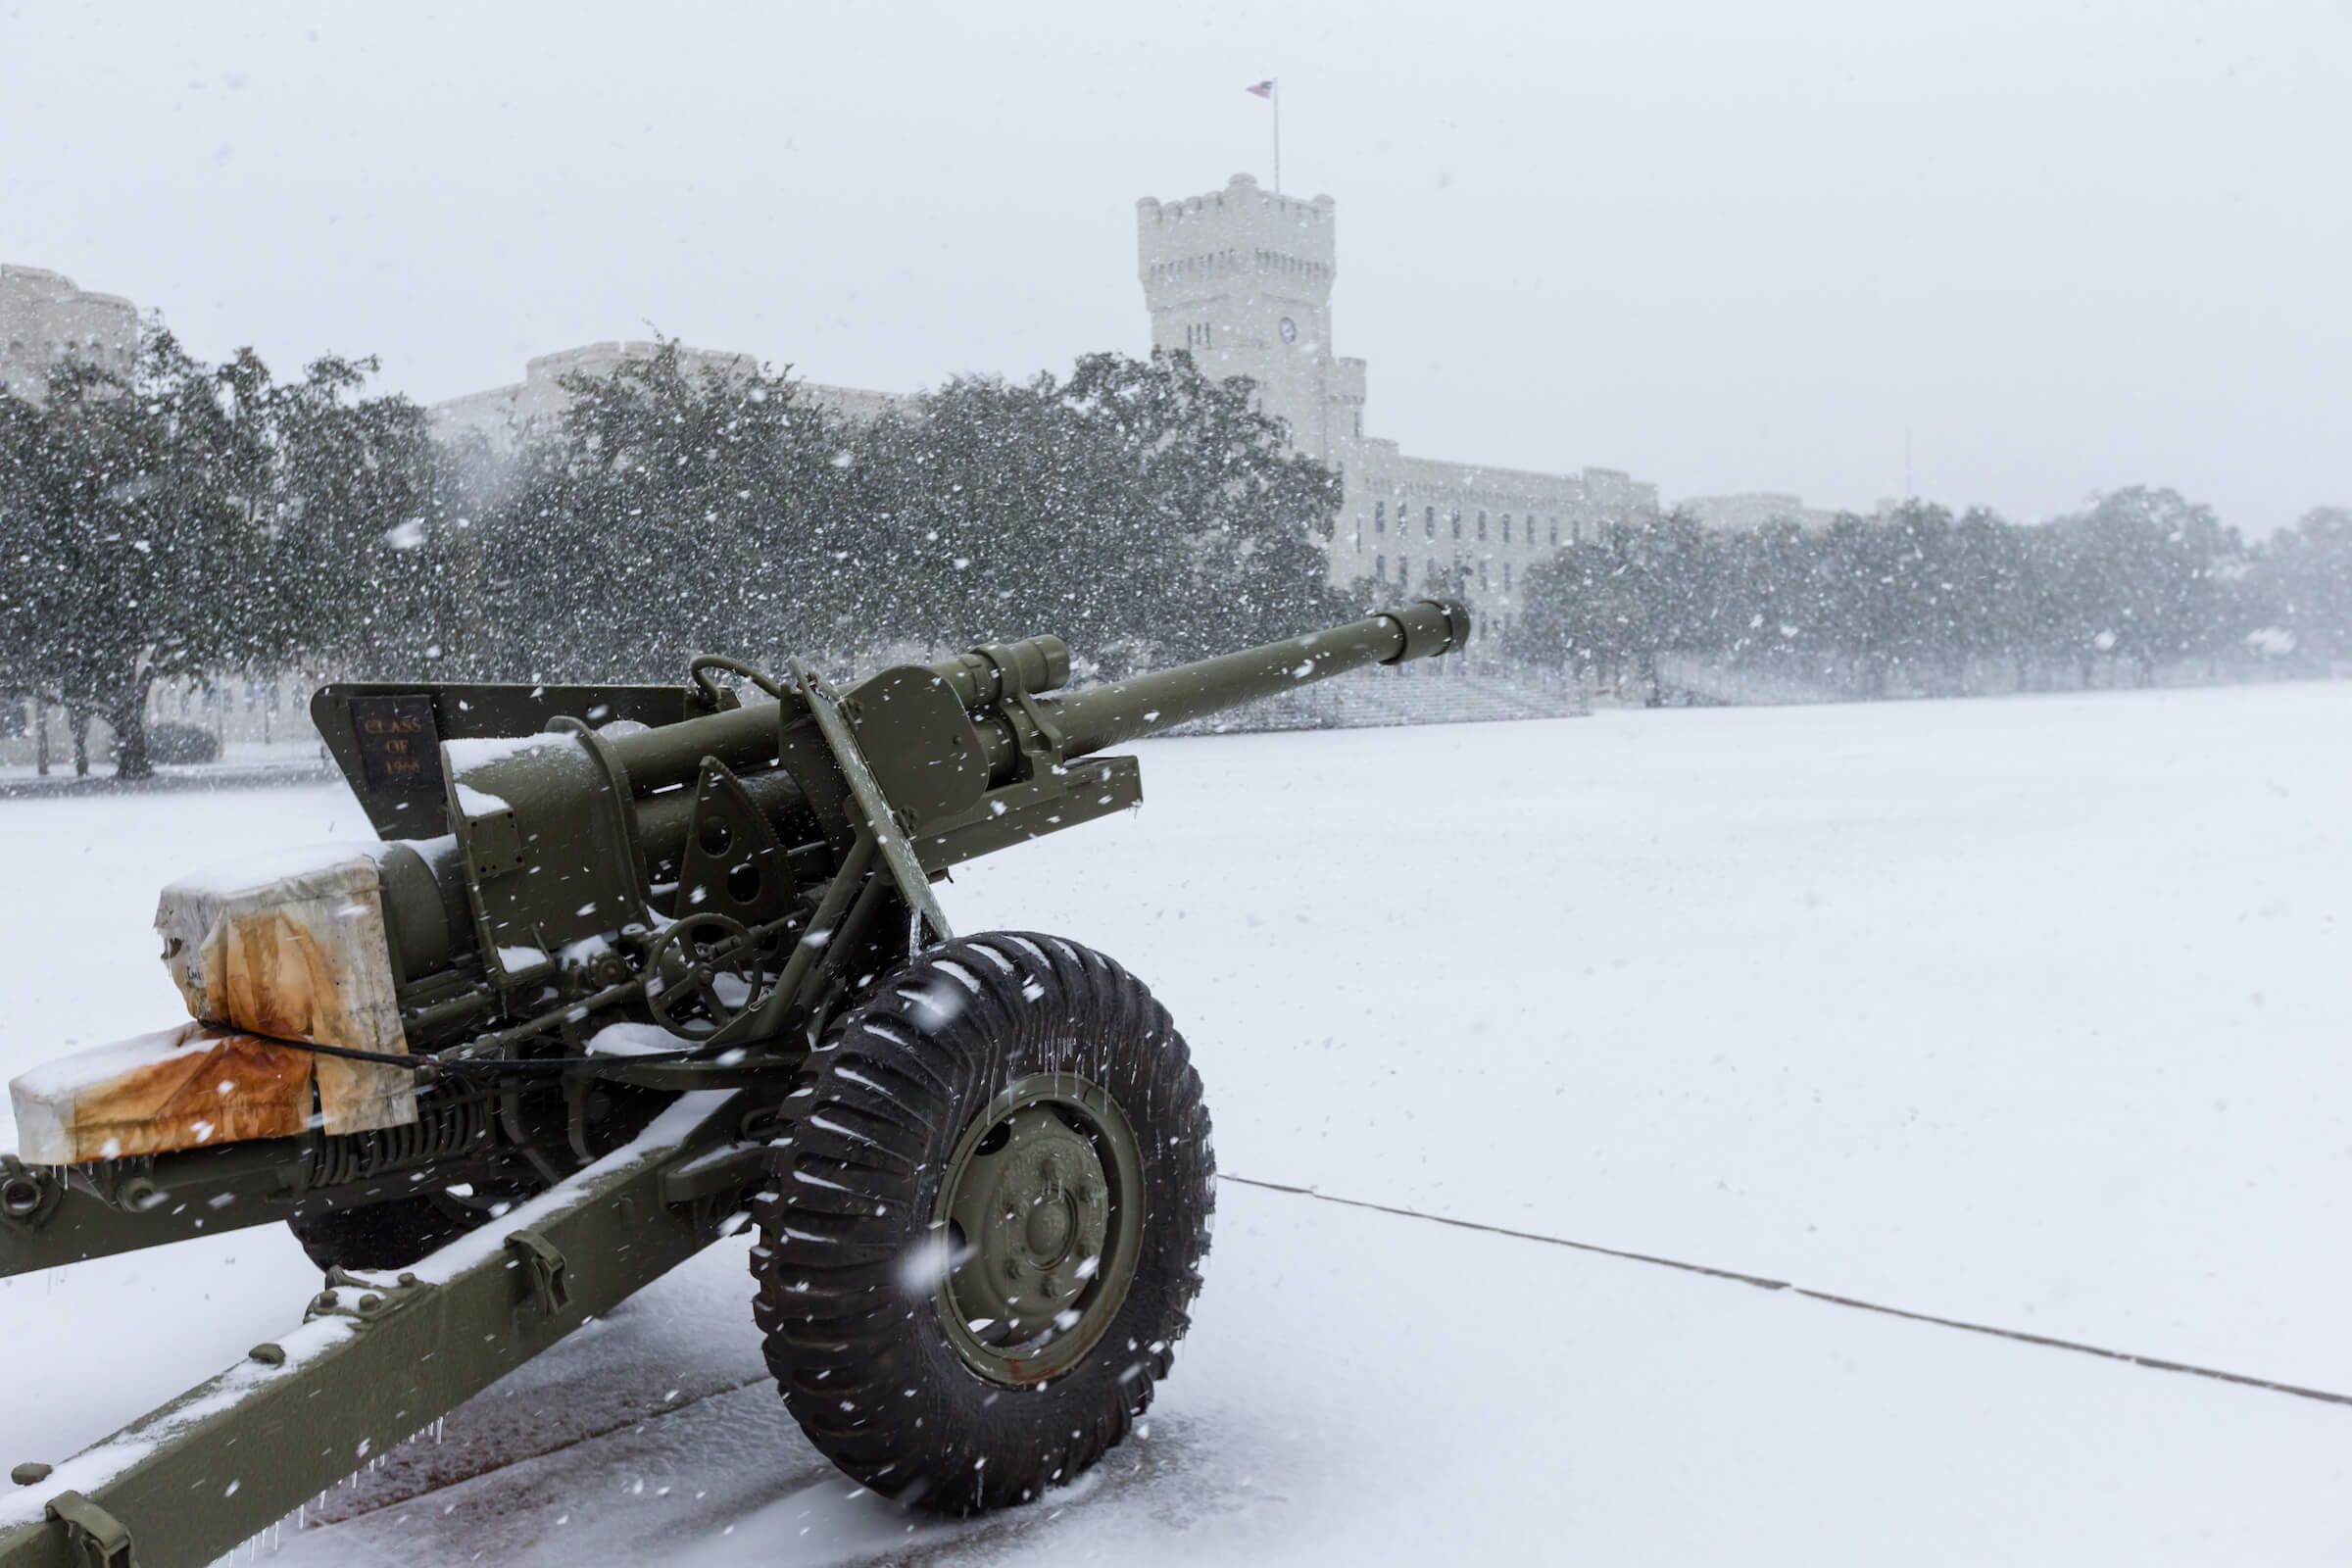 Snow accumulates on Summerall Field with a cannon in the foreground